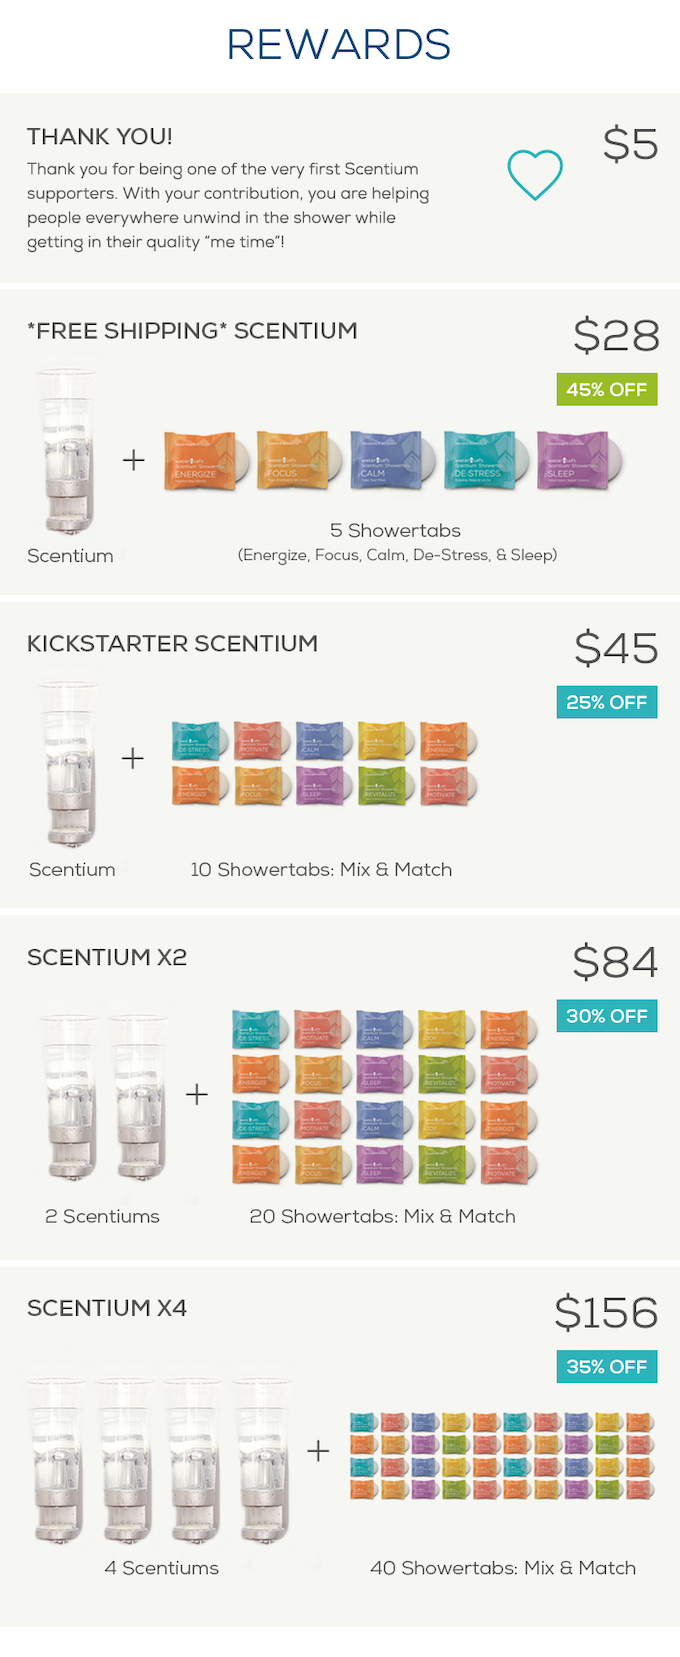 Scentium: turn your shower into a scented wellness retreat by